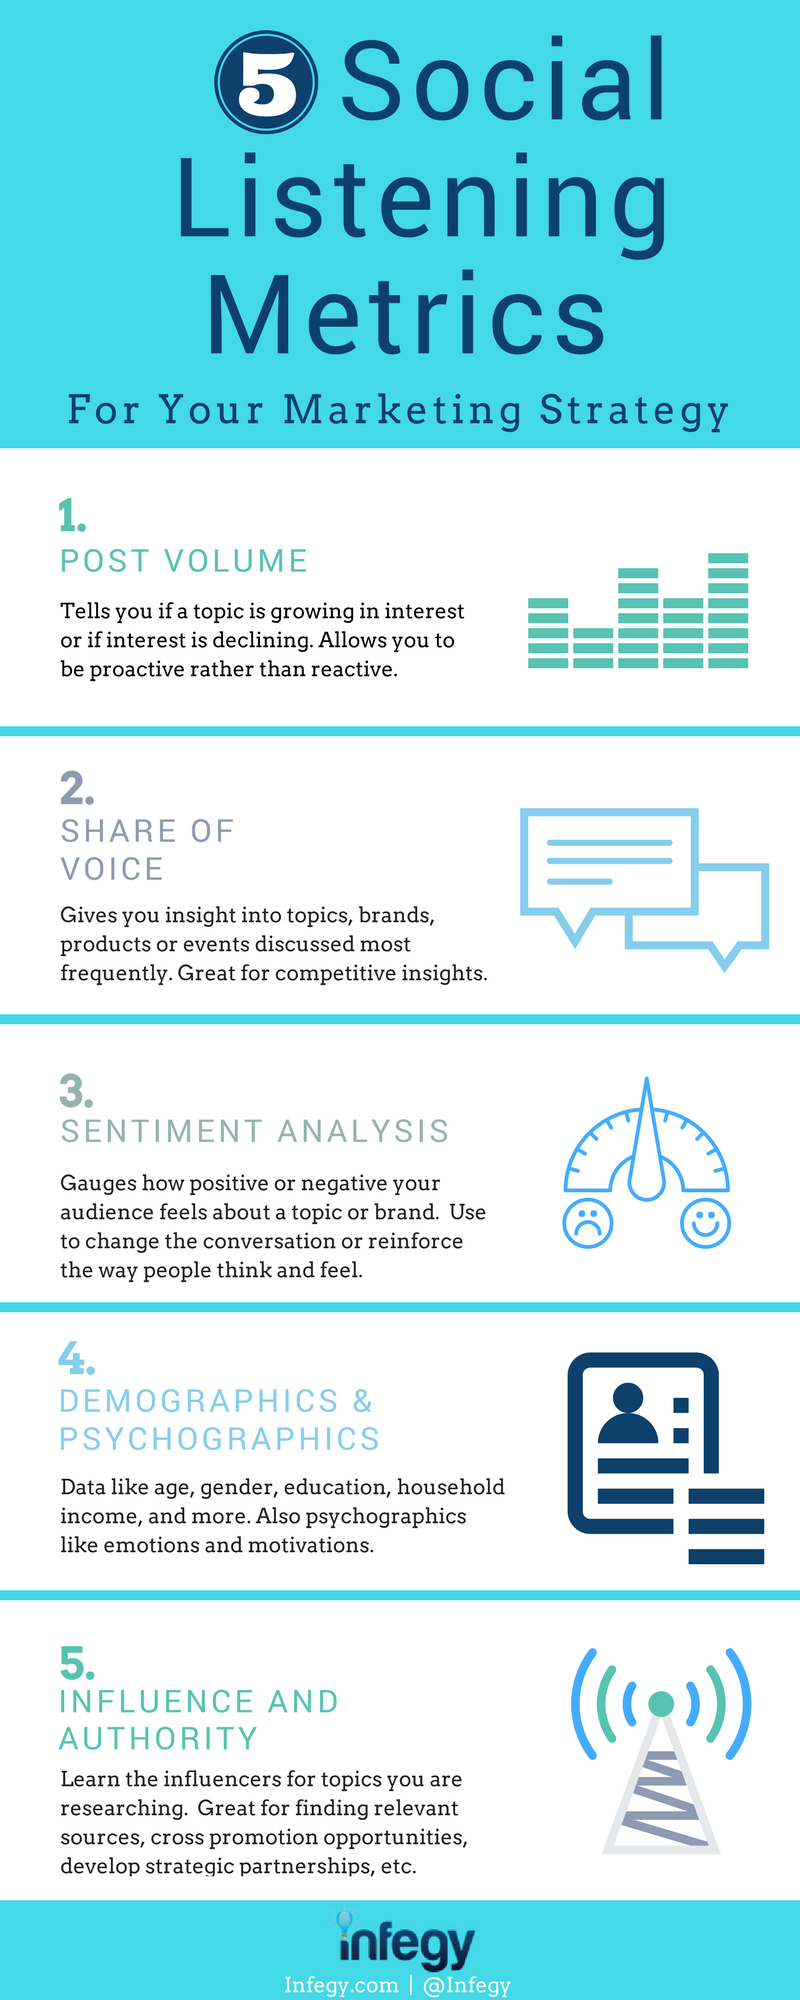 5 Social Listening Metrics For Your Marketing Strategy #3